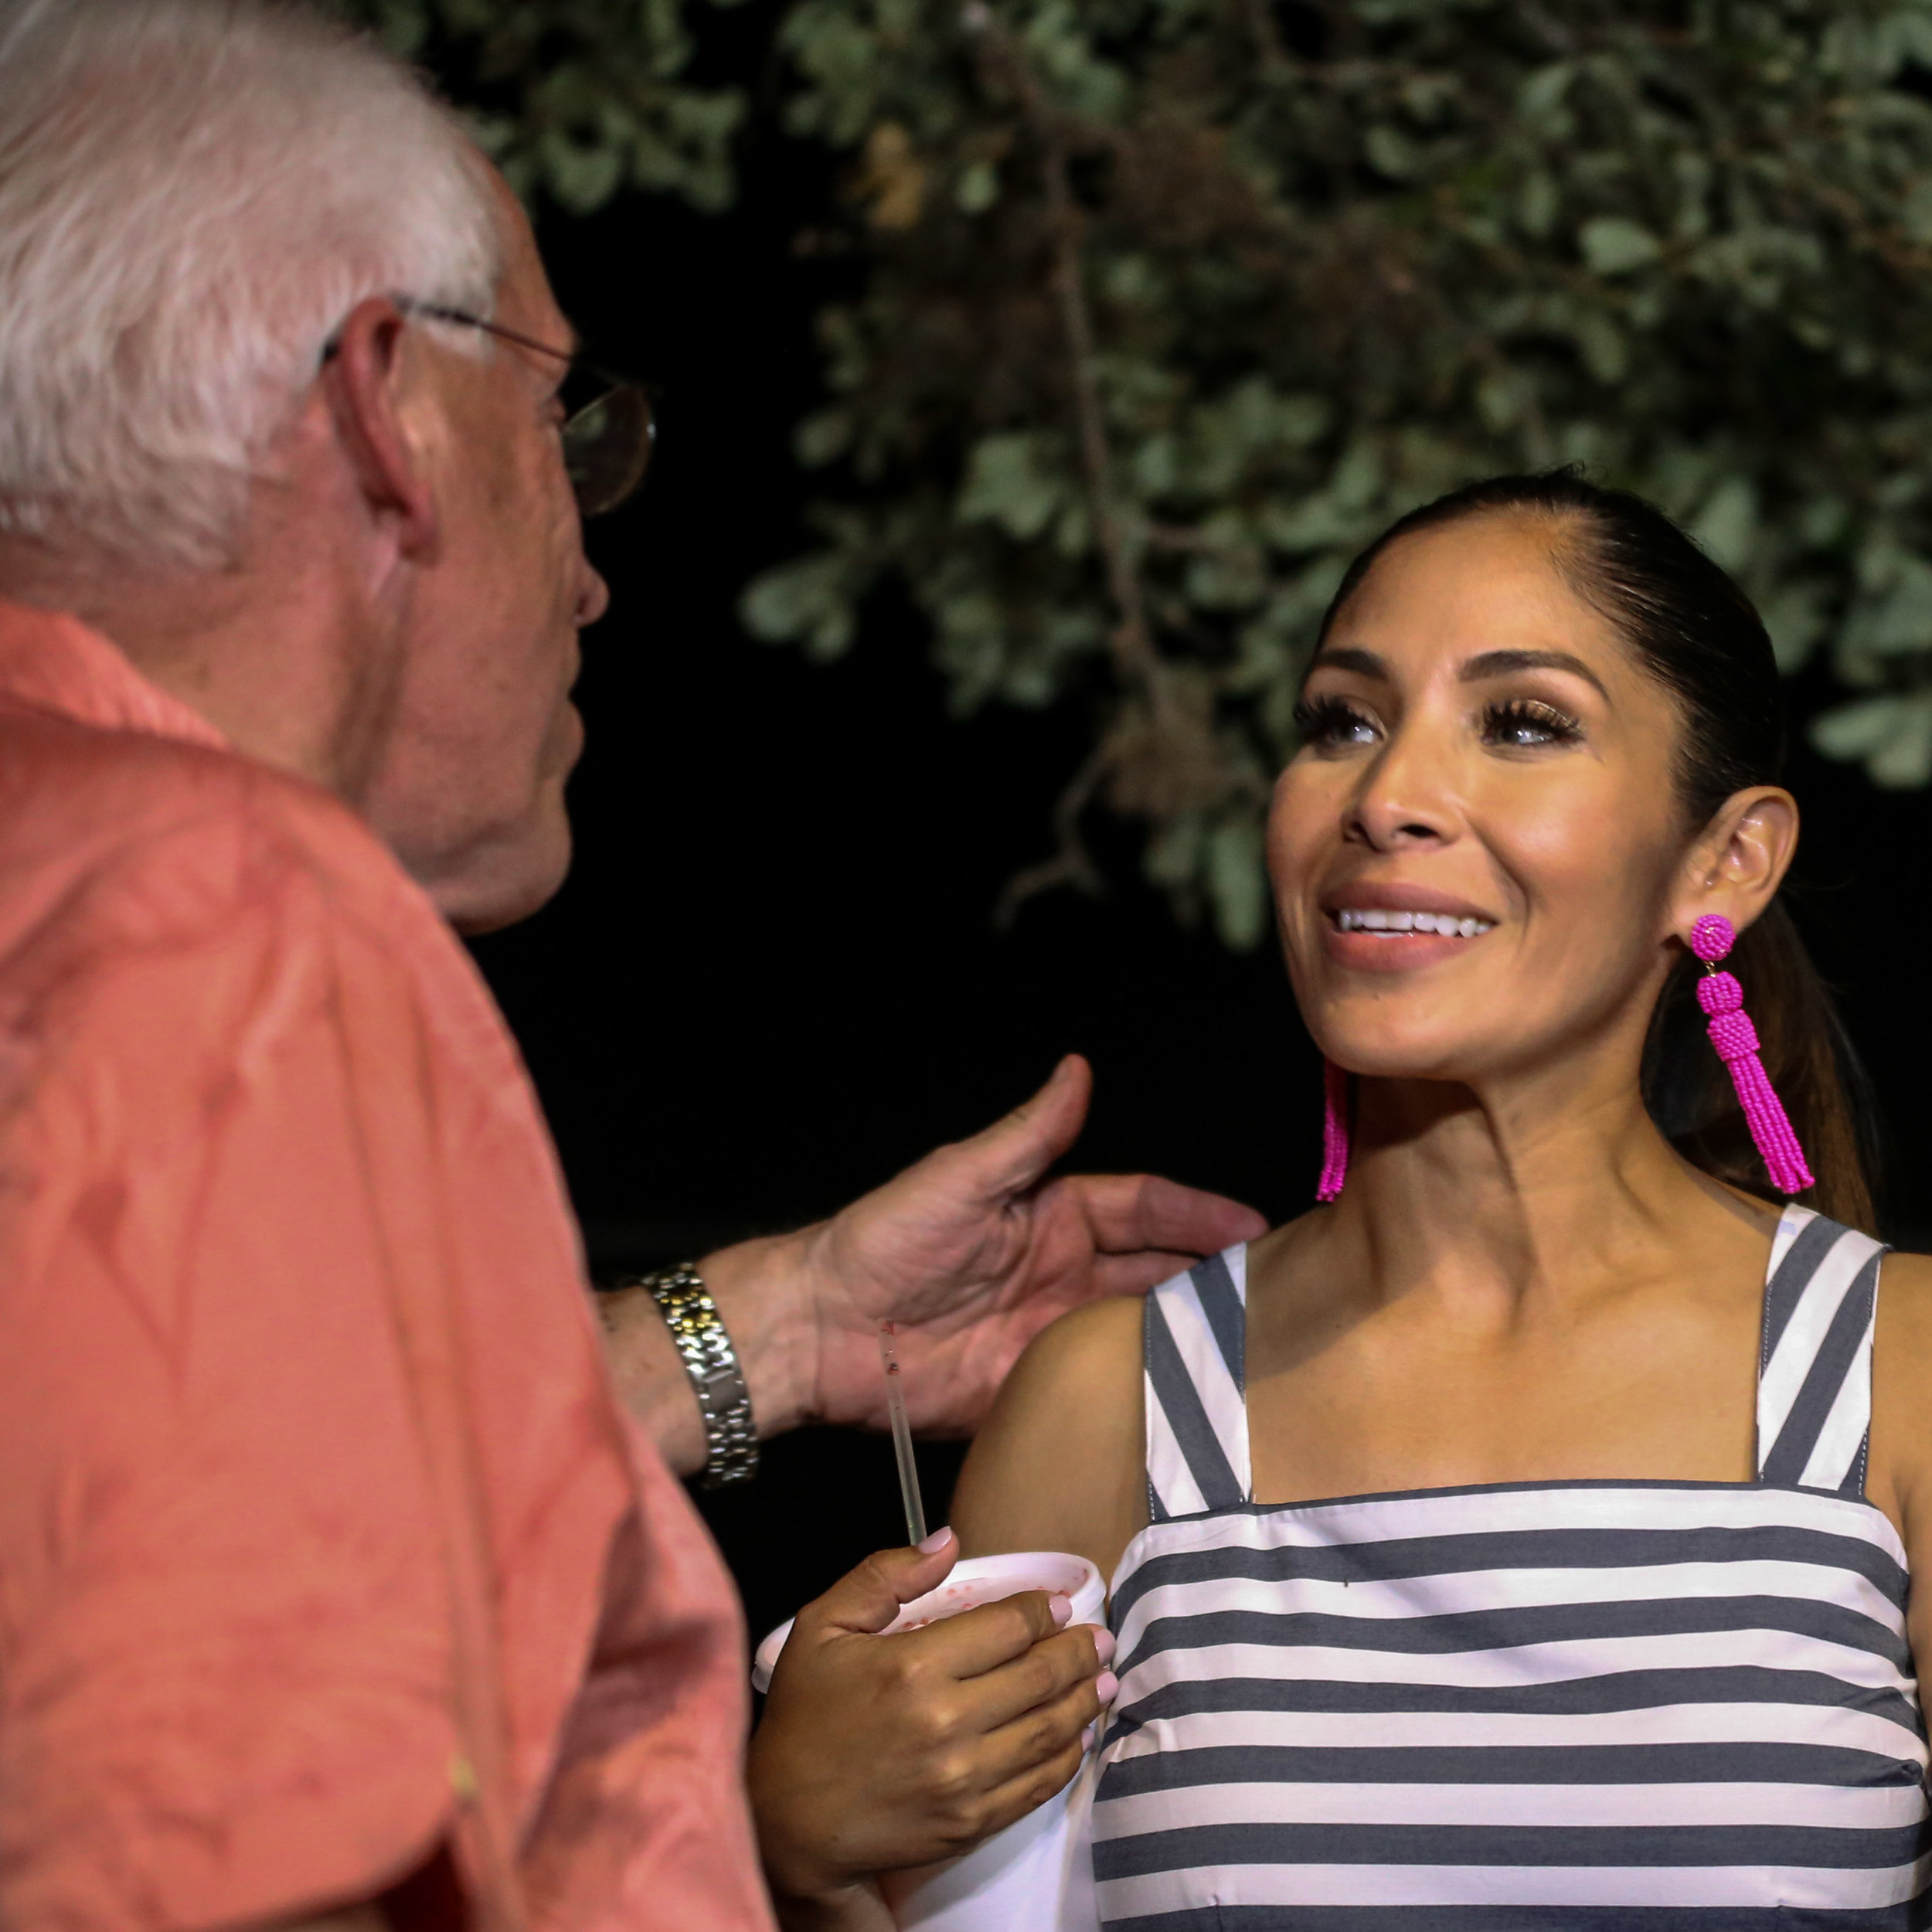 Greg Brockhouse's wife, Annalisa Brockhouse greets her father-in-law at the election party. (Photo by  Jonathan Guajardo )